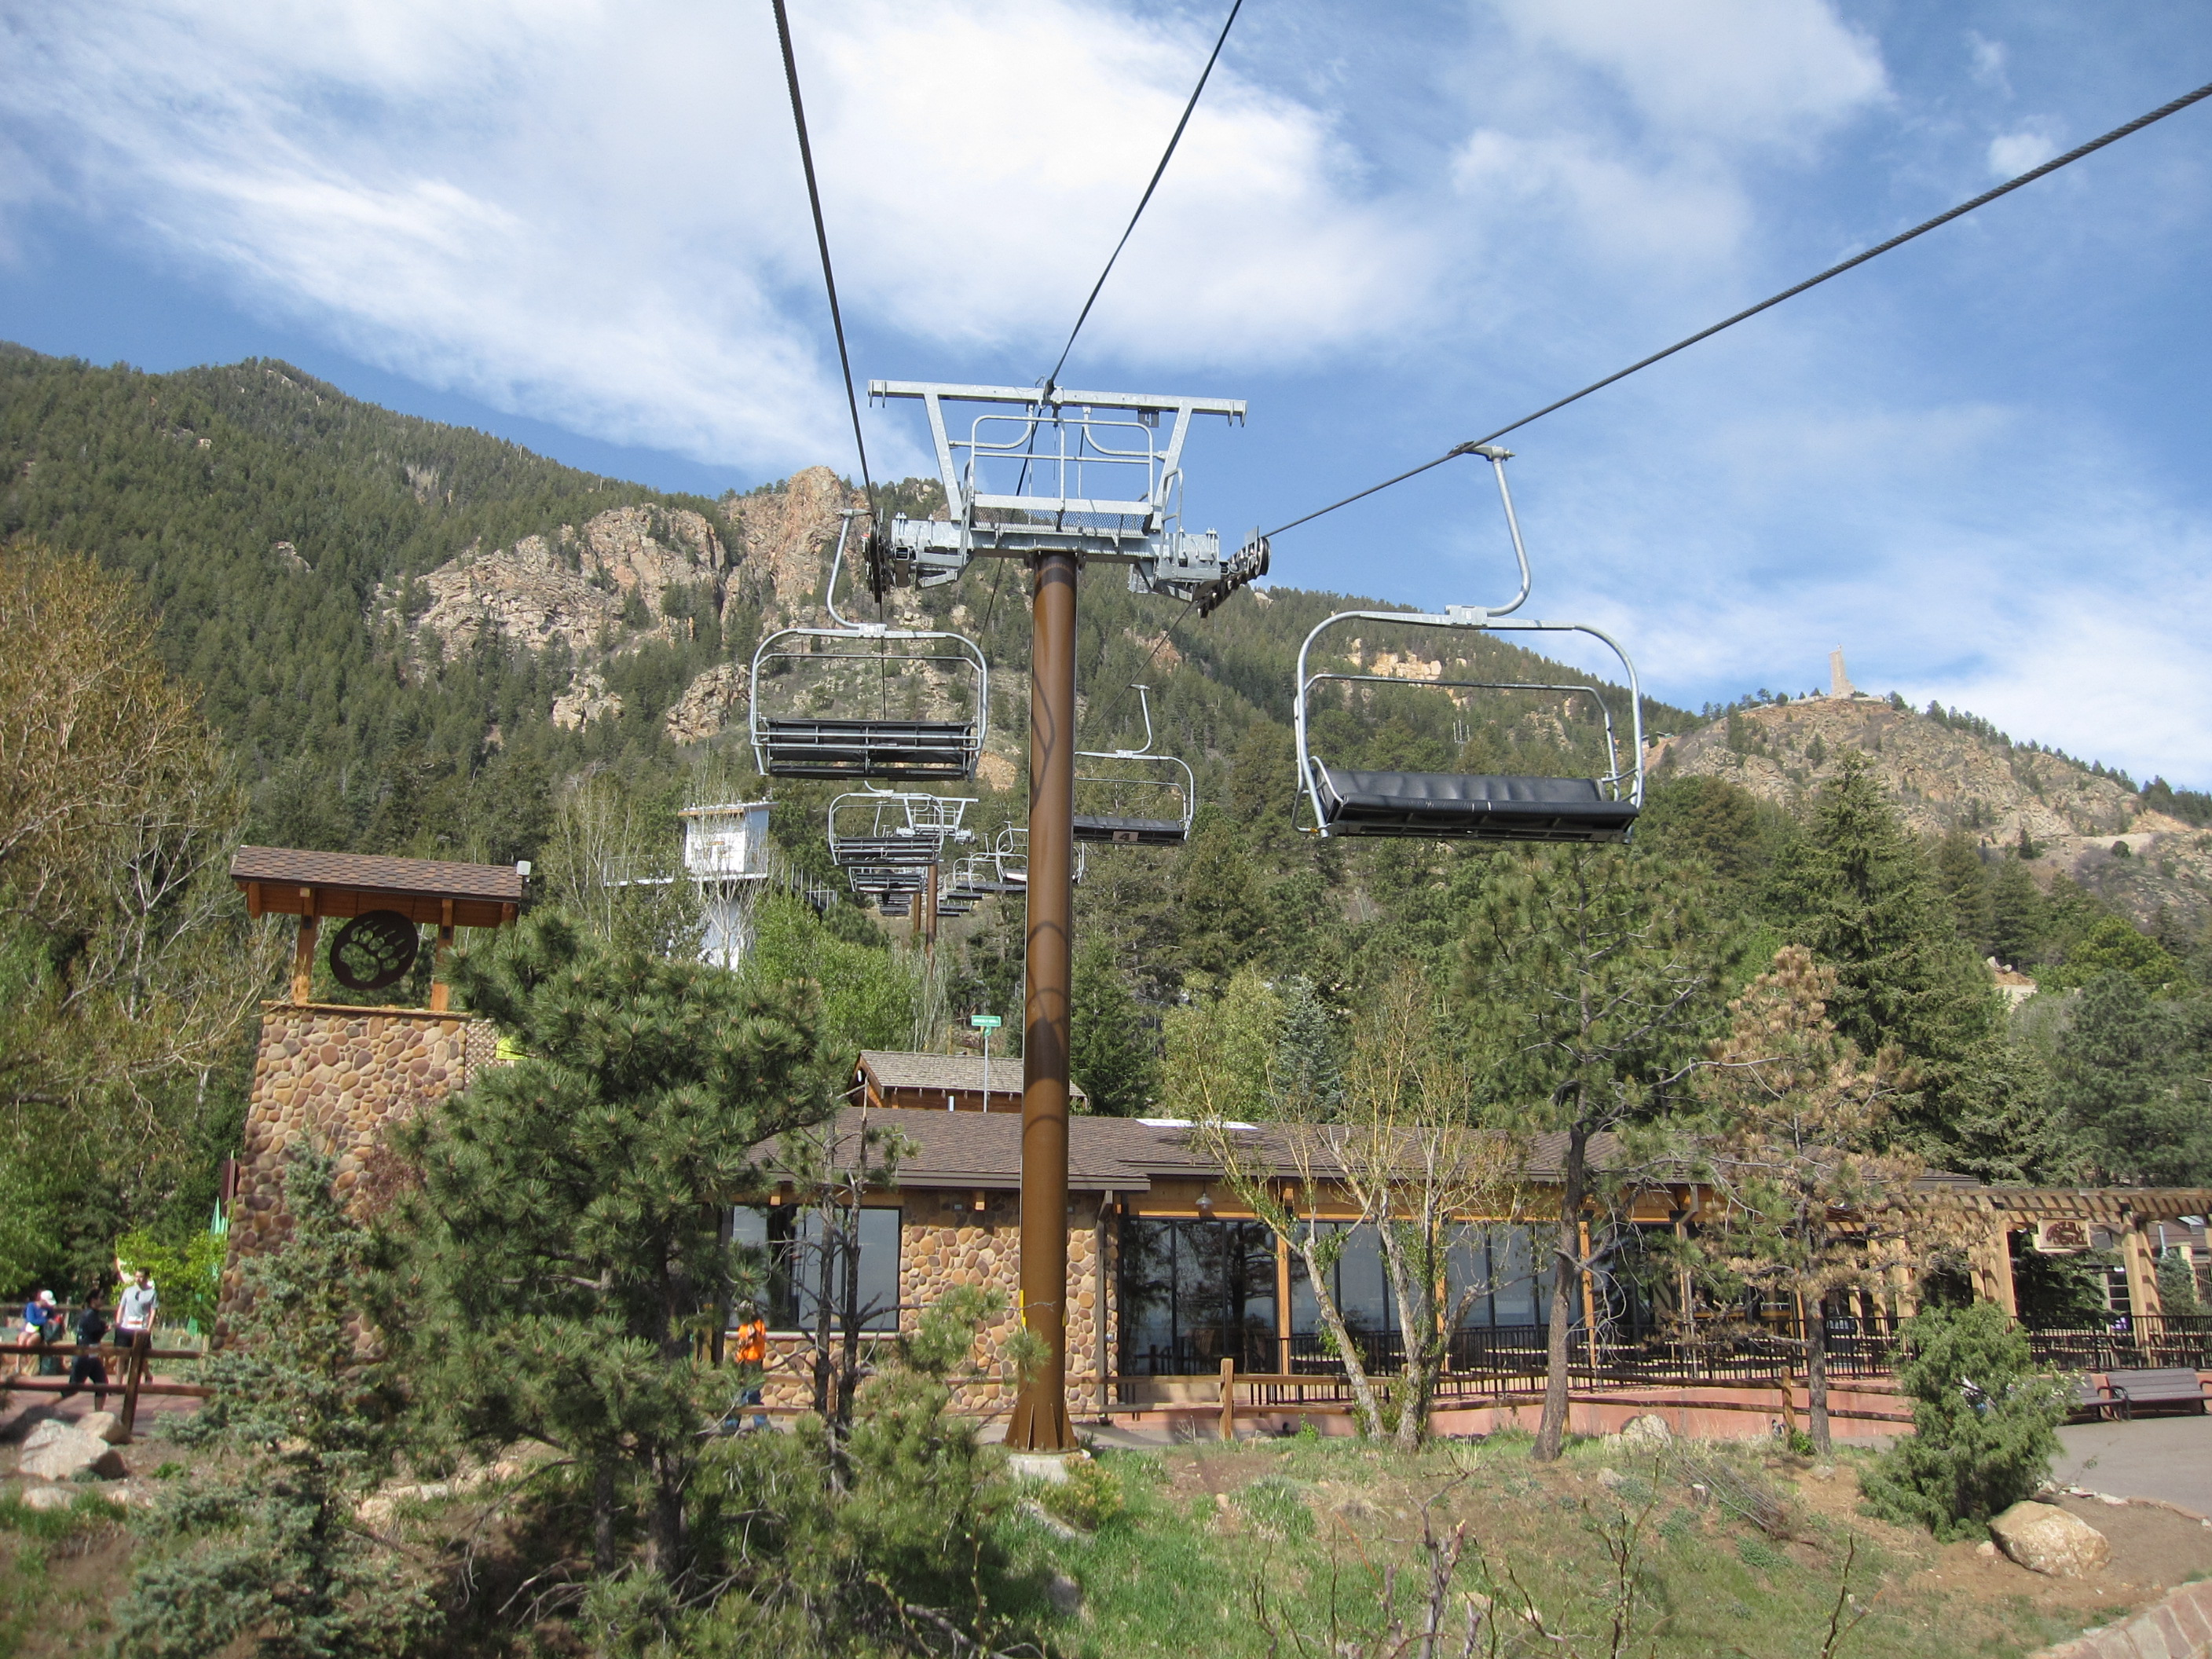 Mountaineer skyride cheyenne mountain zoo co lift blog for Mountain view motors colorado springs co